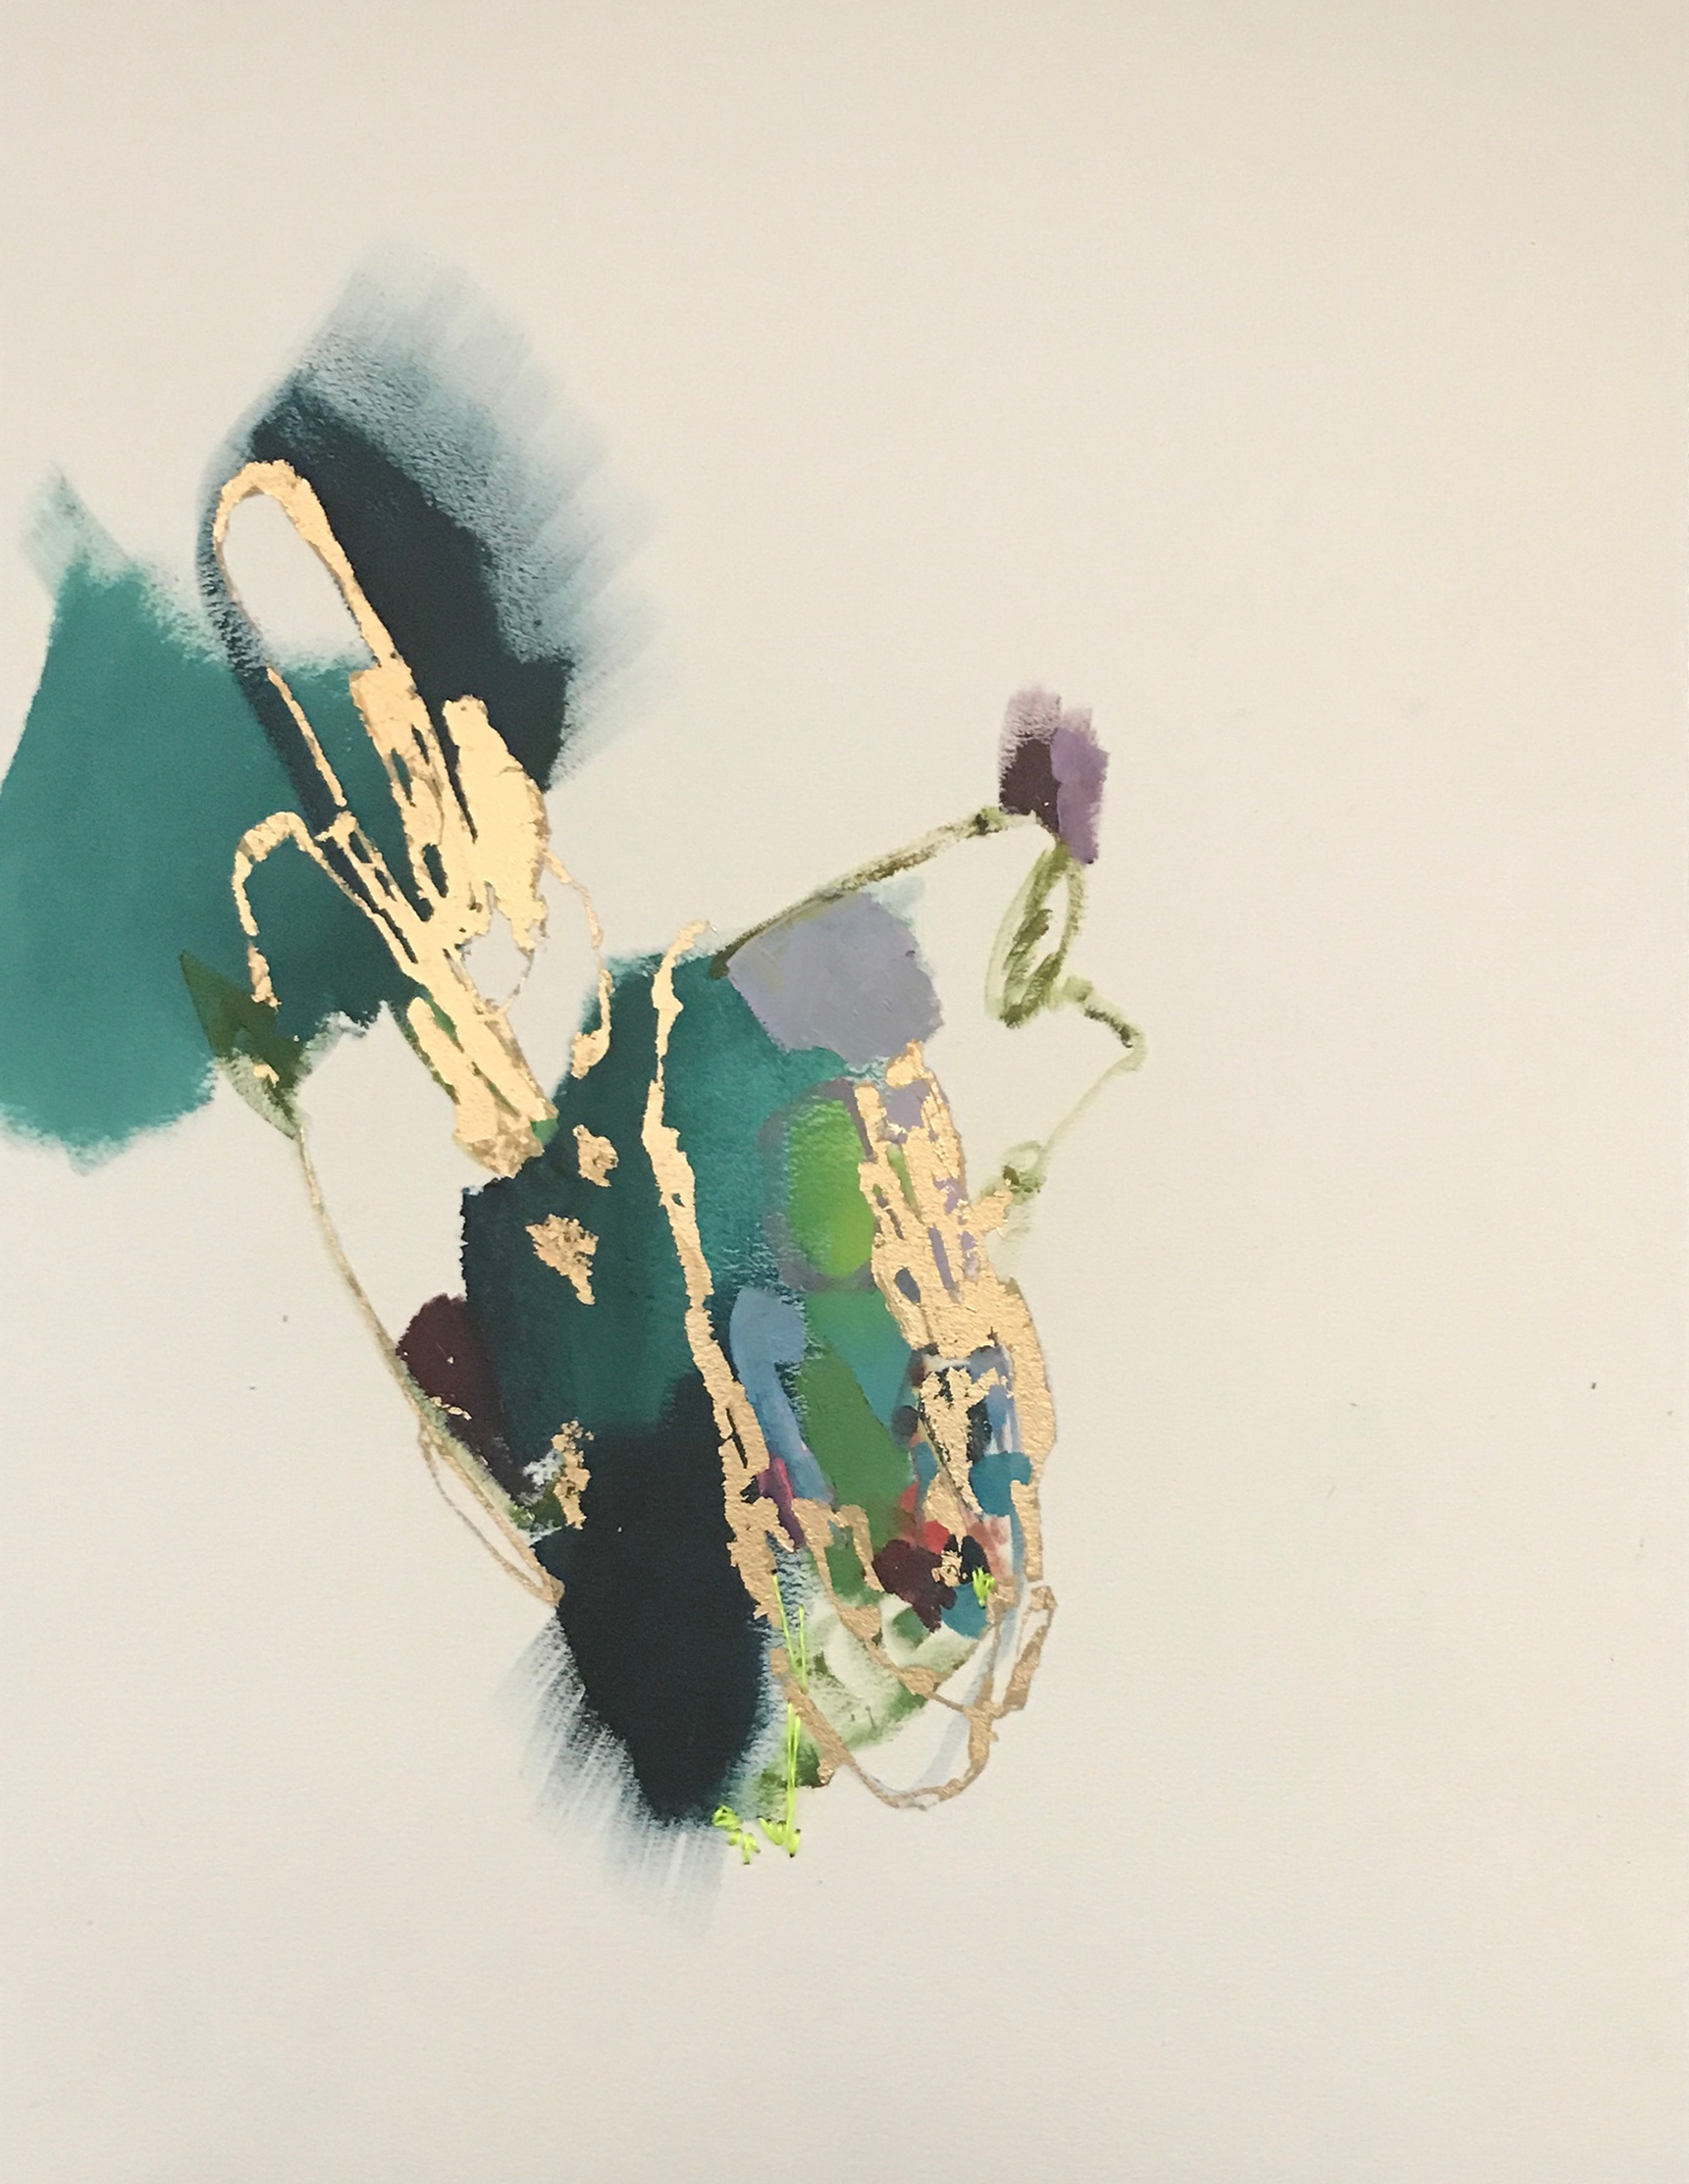 TUMBLING WAVE #4    12 in. x 16 in.    oil, stitching, gold leaf on paper     SOLD